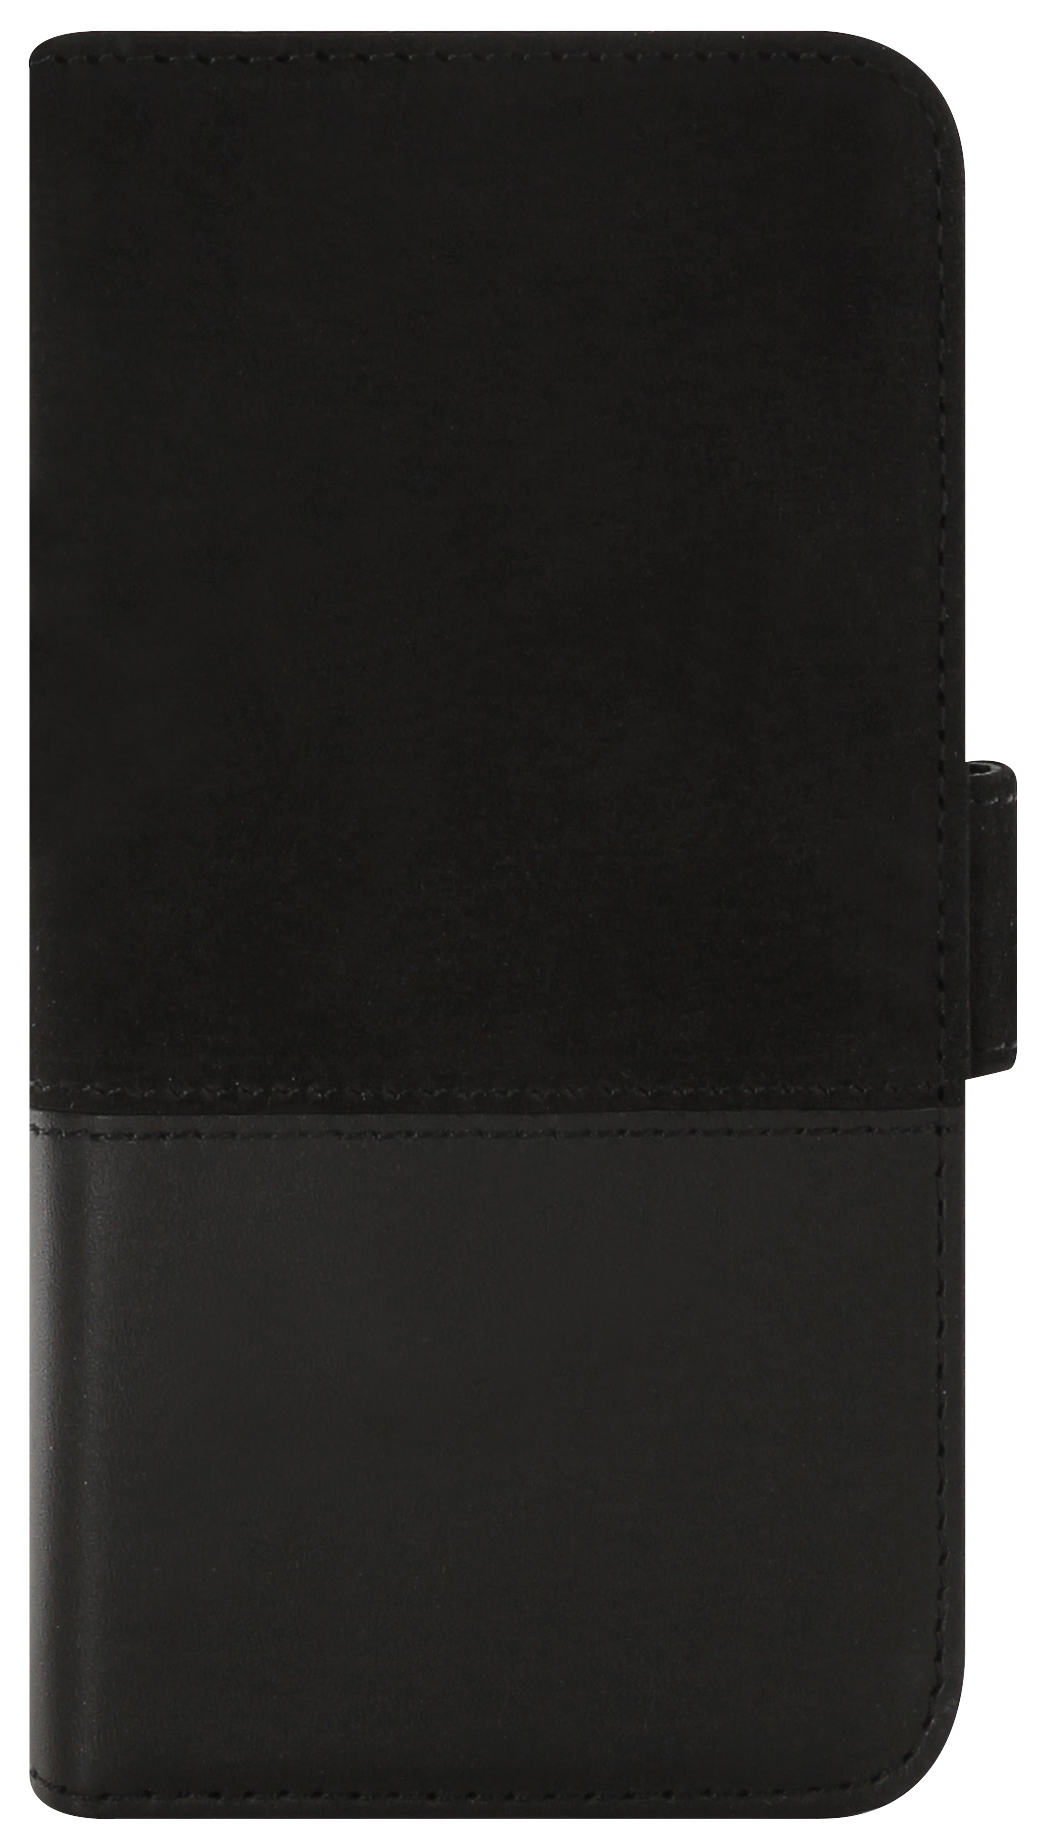 HOLDIT Wallet magnet pouzdro flip Samsung Galaxy S8 black leather/suede